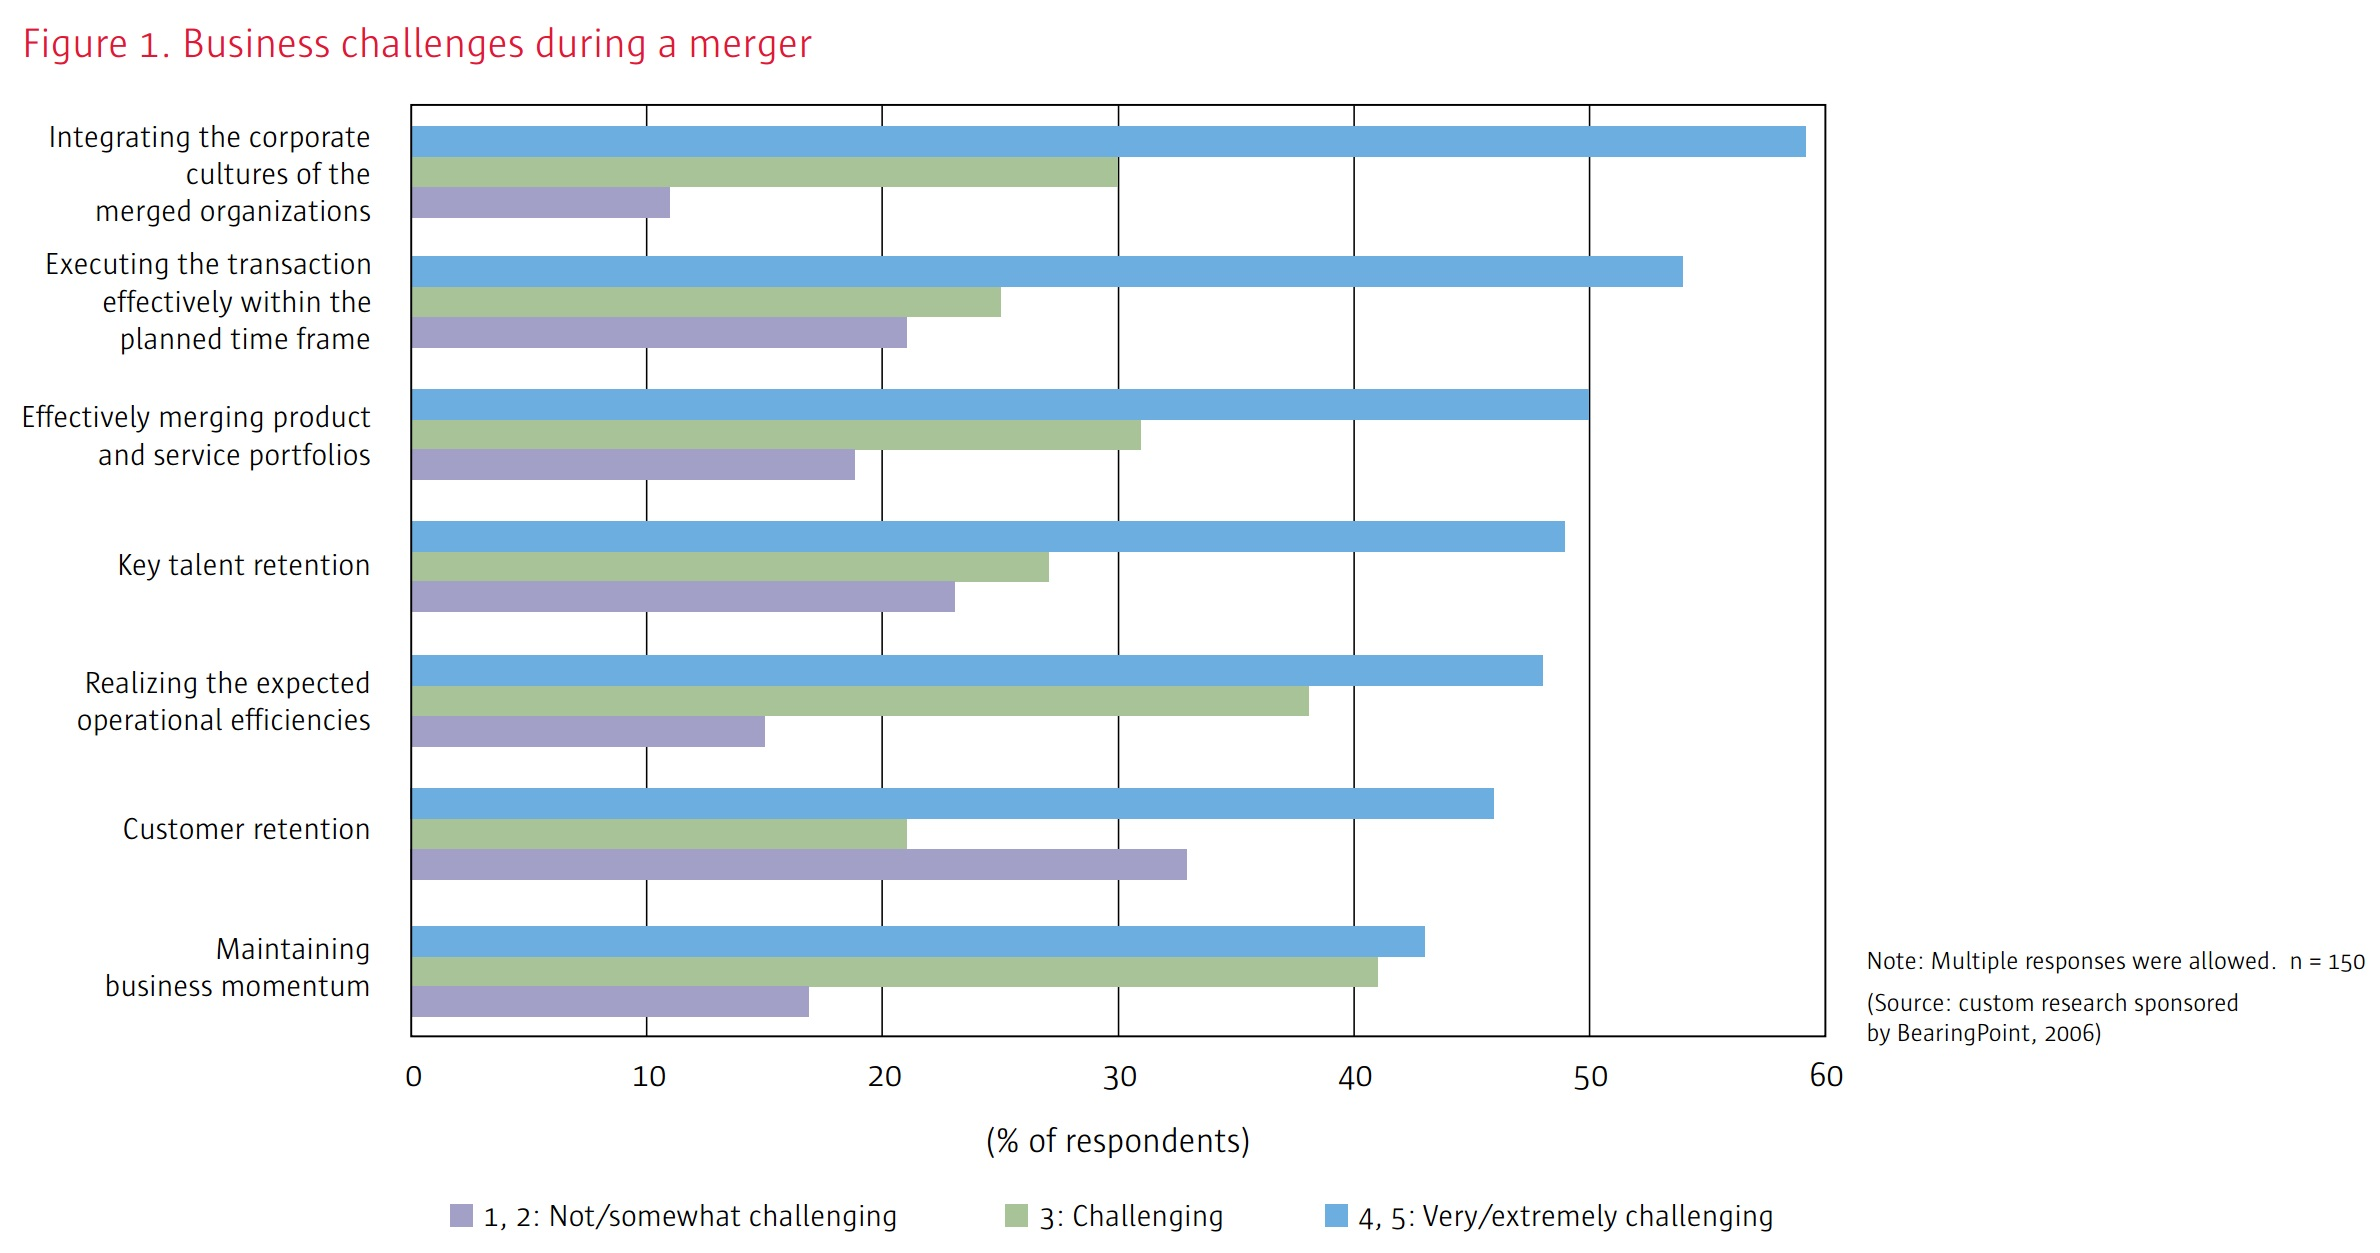 Figure 1. Business challenges during a merger